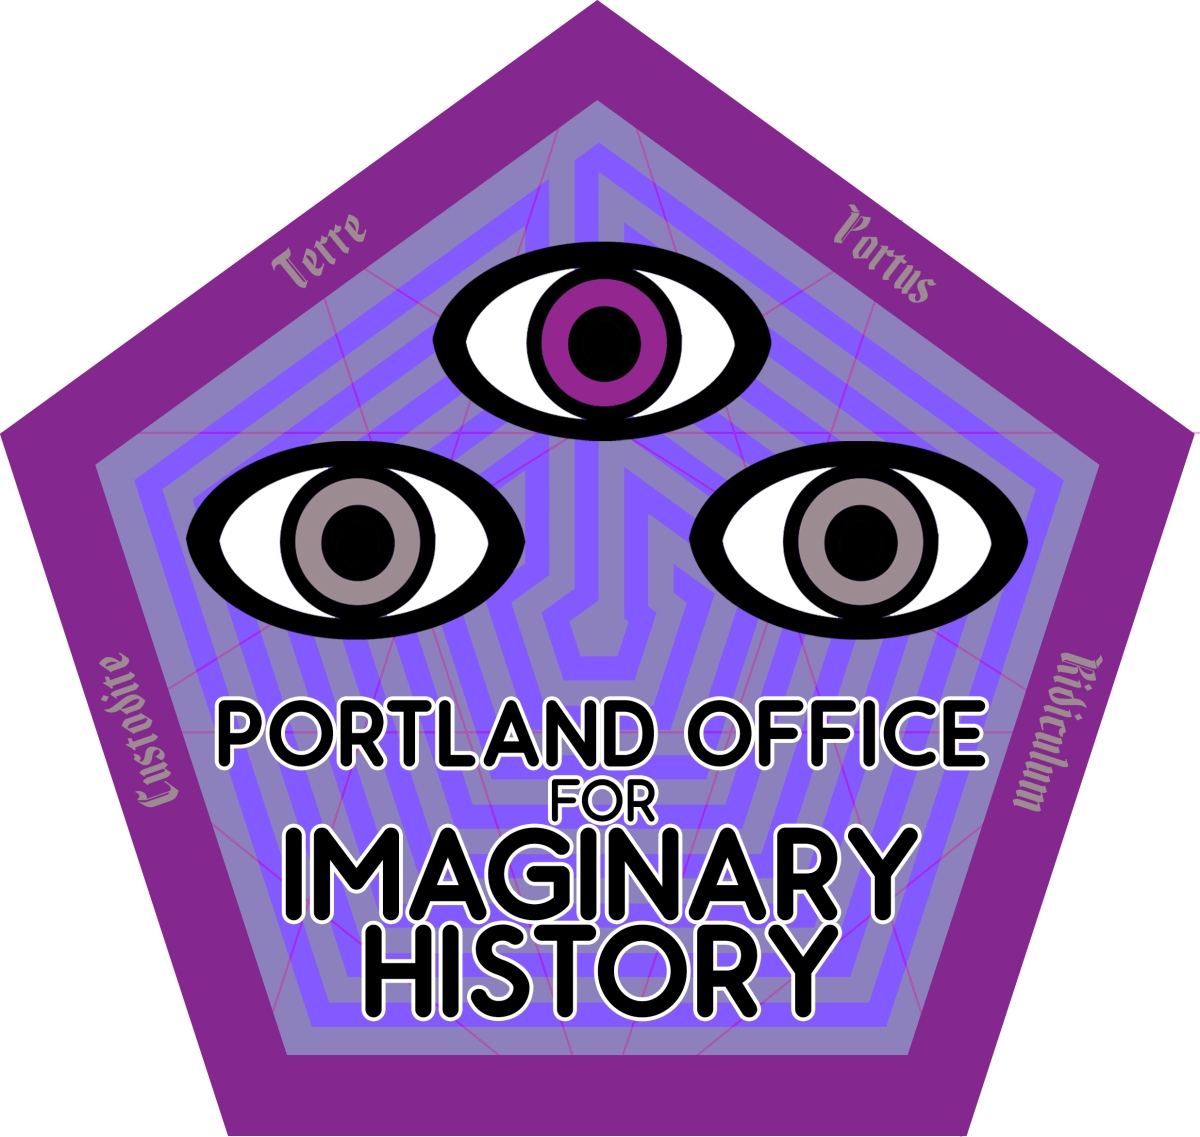 The Portland Office for Imaginary History 2016